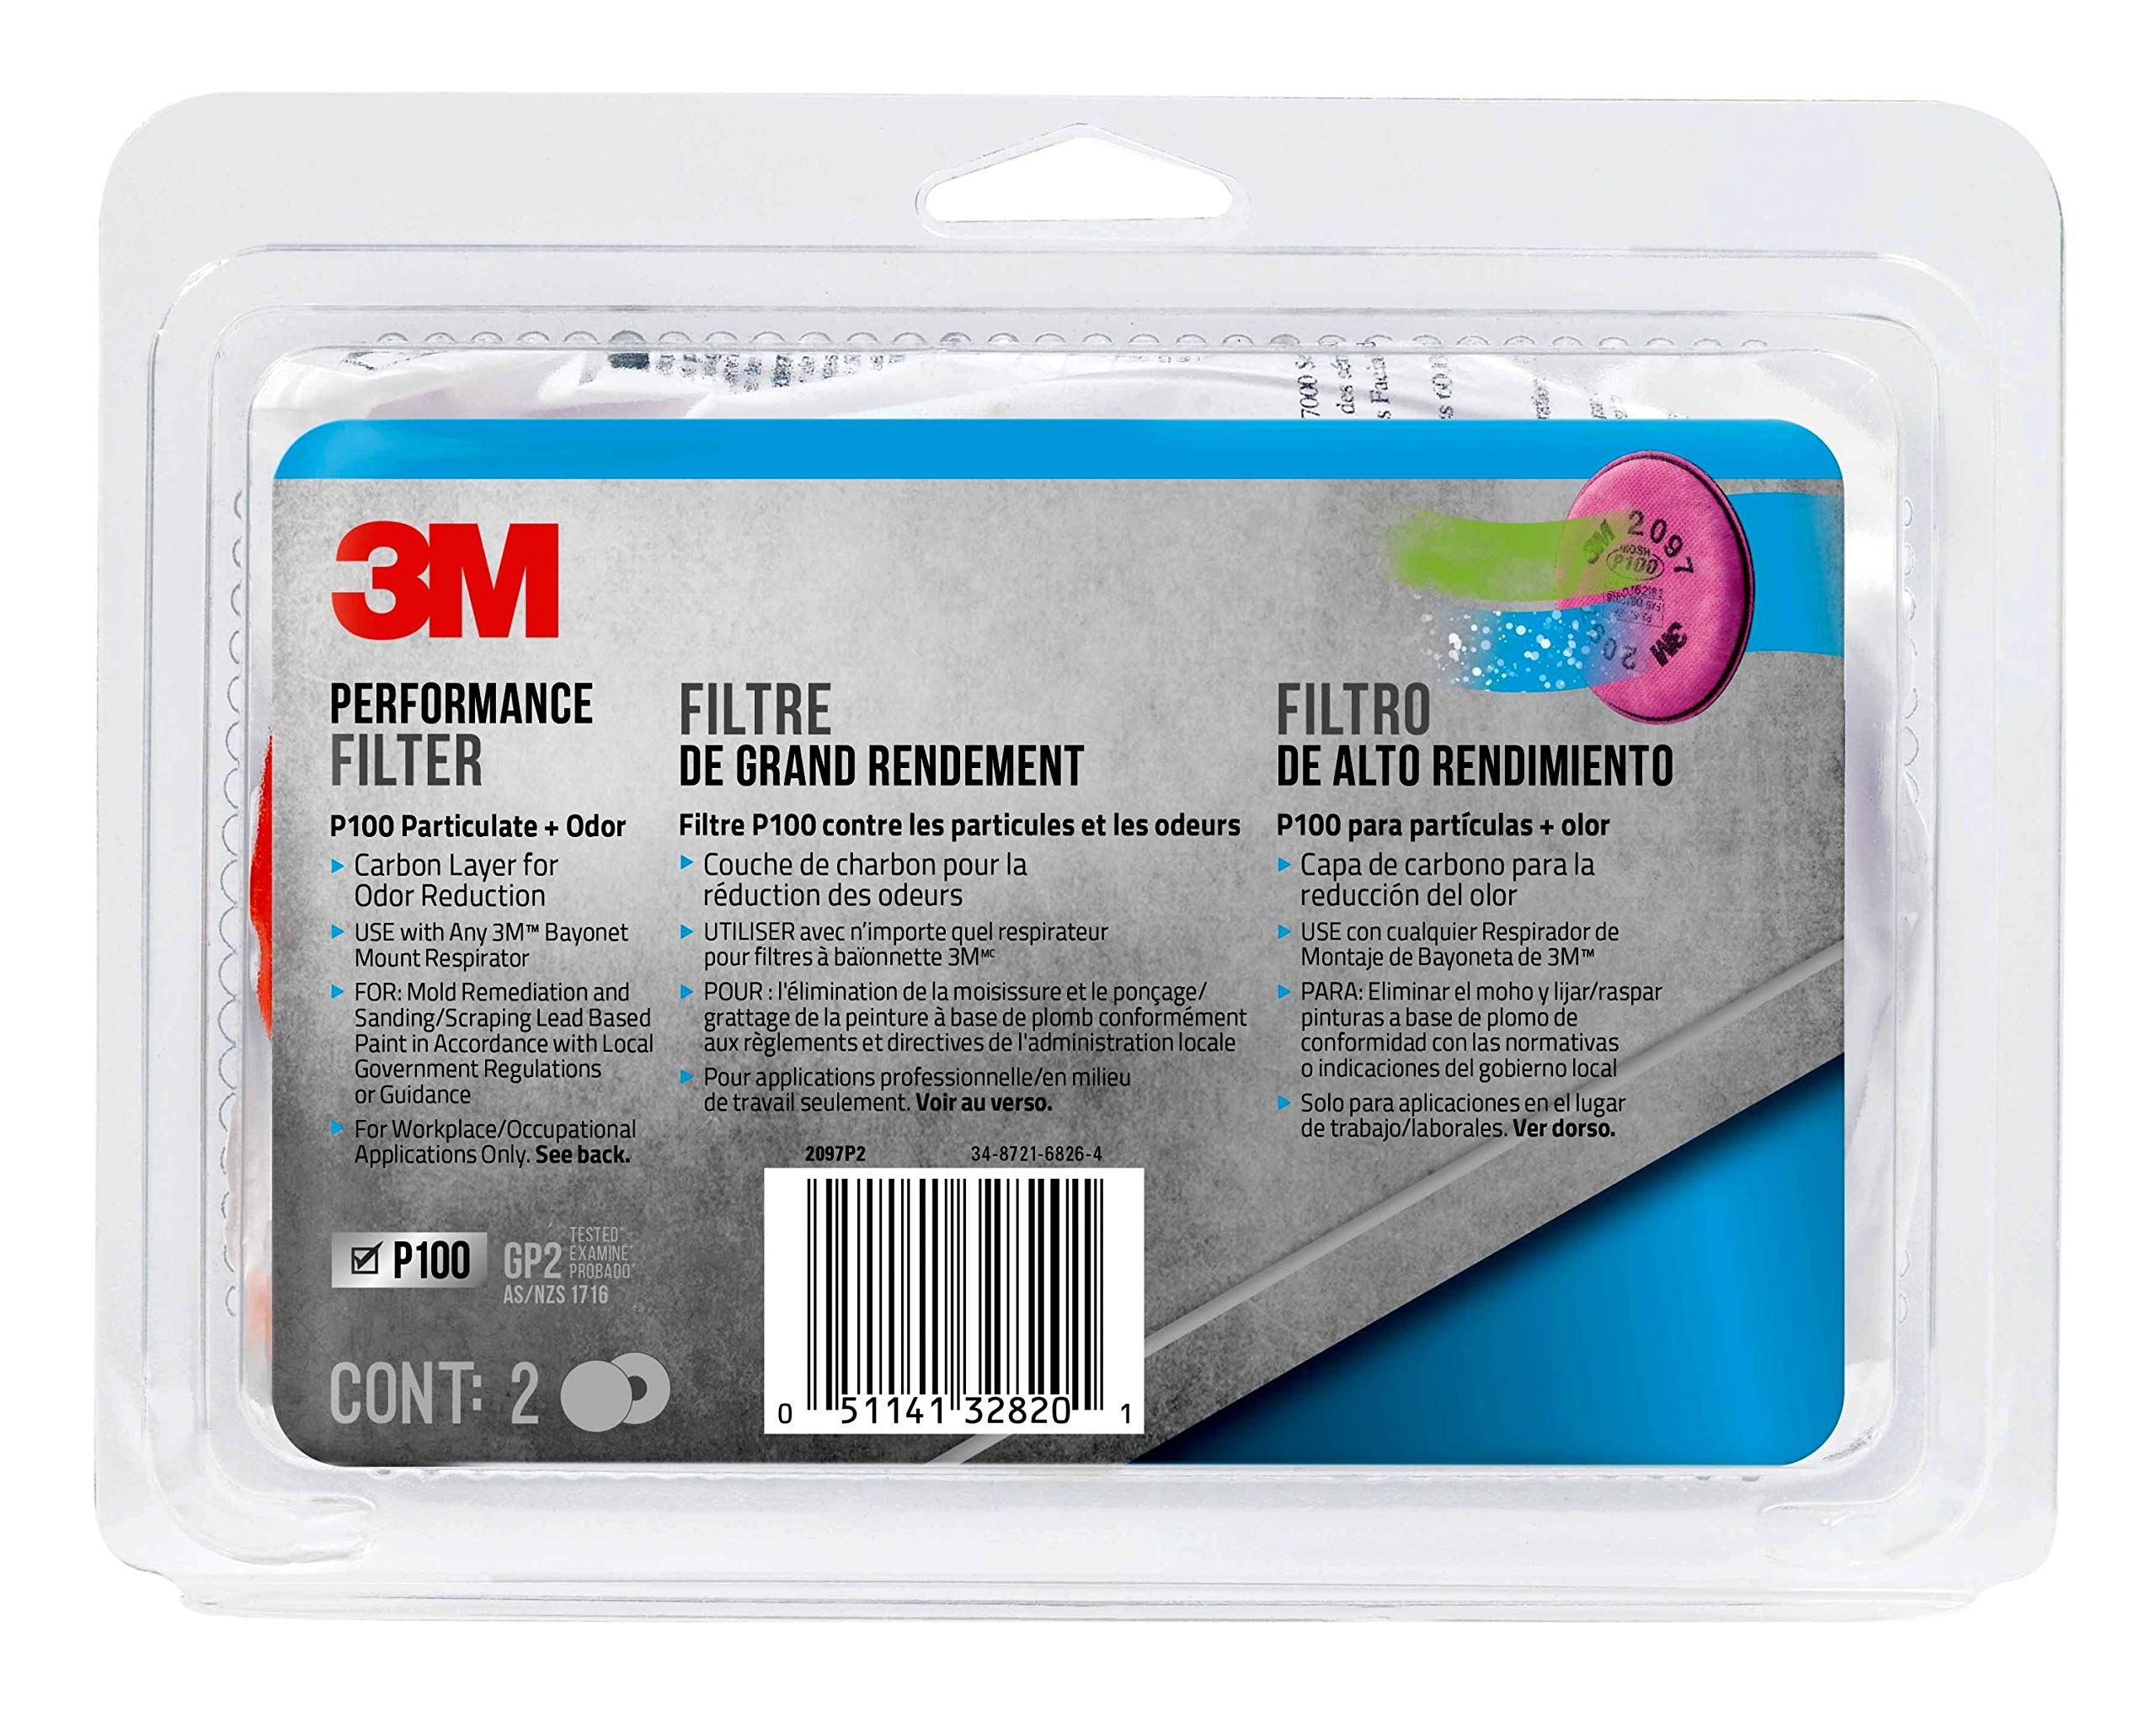 3M - 2097PA1-A - 2097P2-DC P100 Particulate Filter with Nuisance Level Organic Vapor Release, 2-Pair Original version